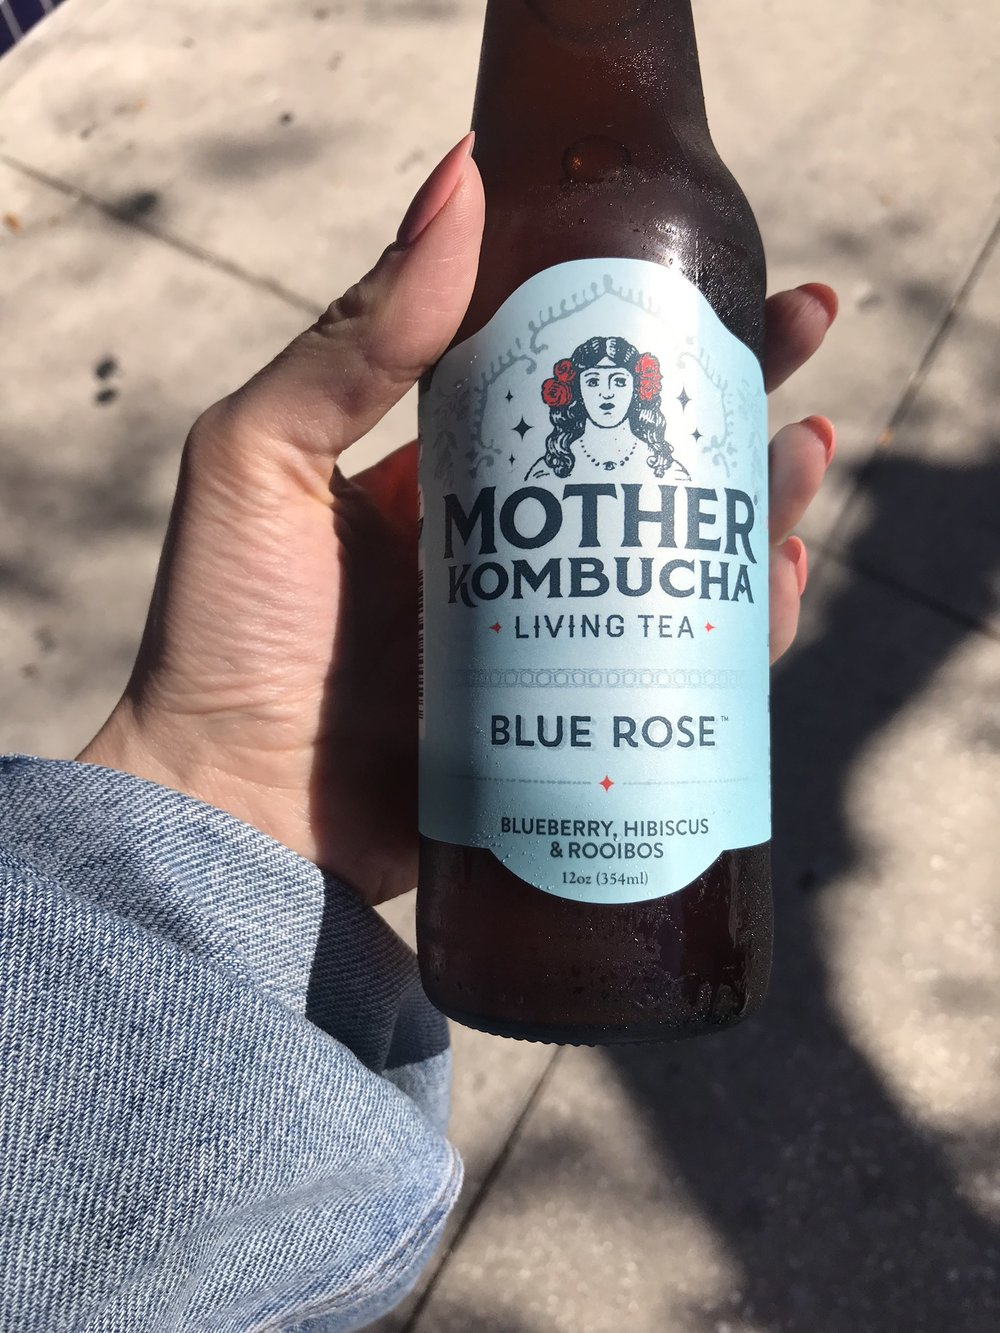 (Me Holding Mother Kombucha at the Cider Press Cafe, St. Pete, Florida.)